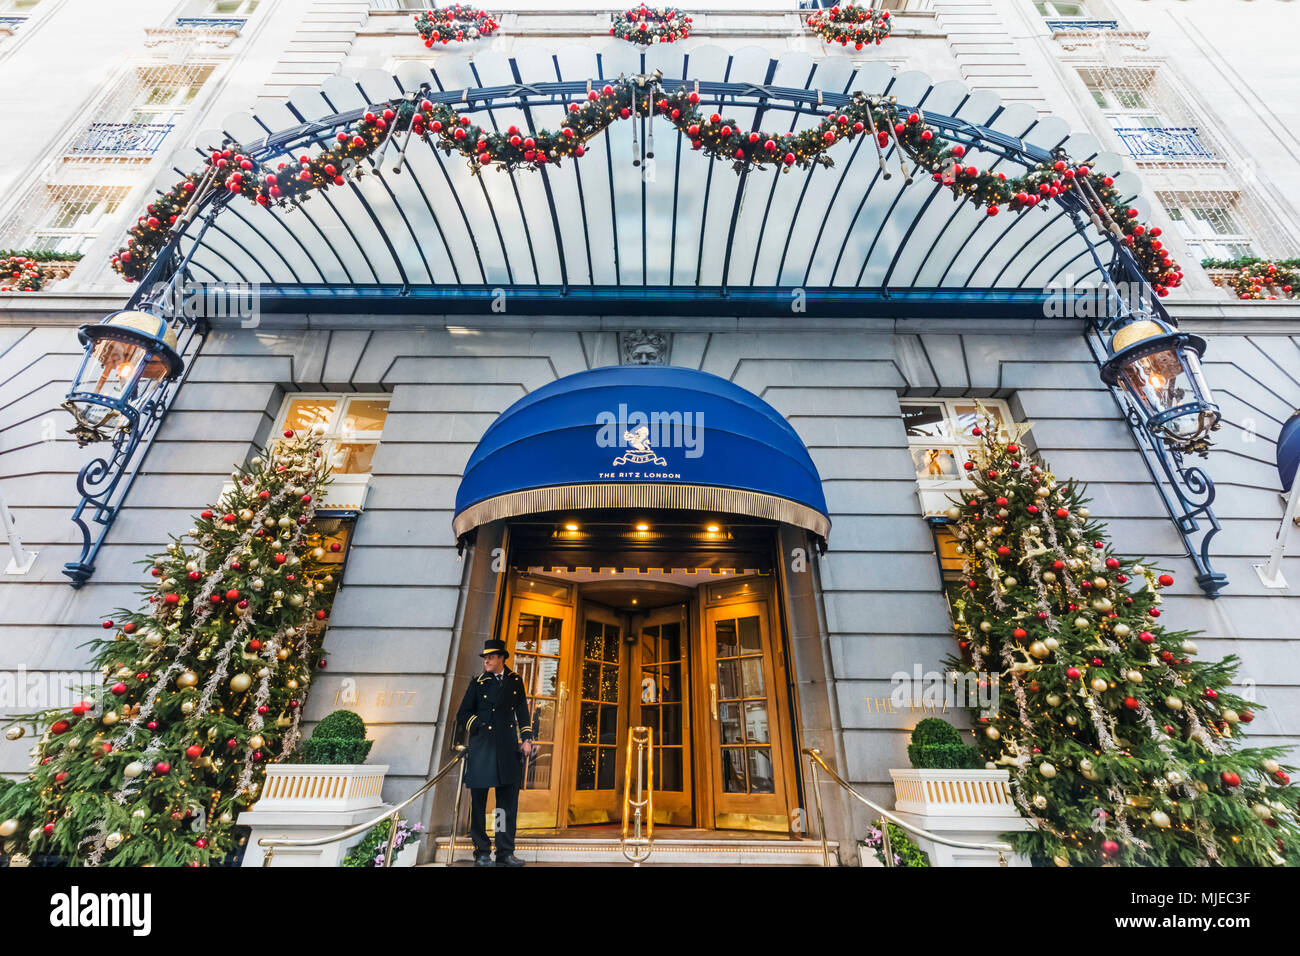 England, London, Piccadilly, The Ritz Hotel with Christmas Decorations - Stock Image